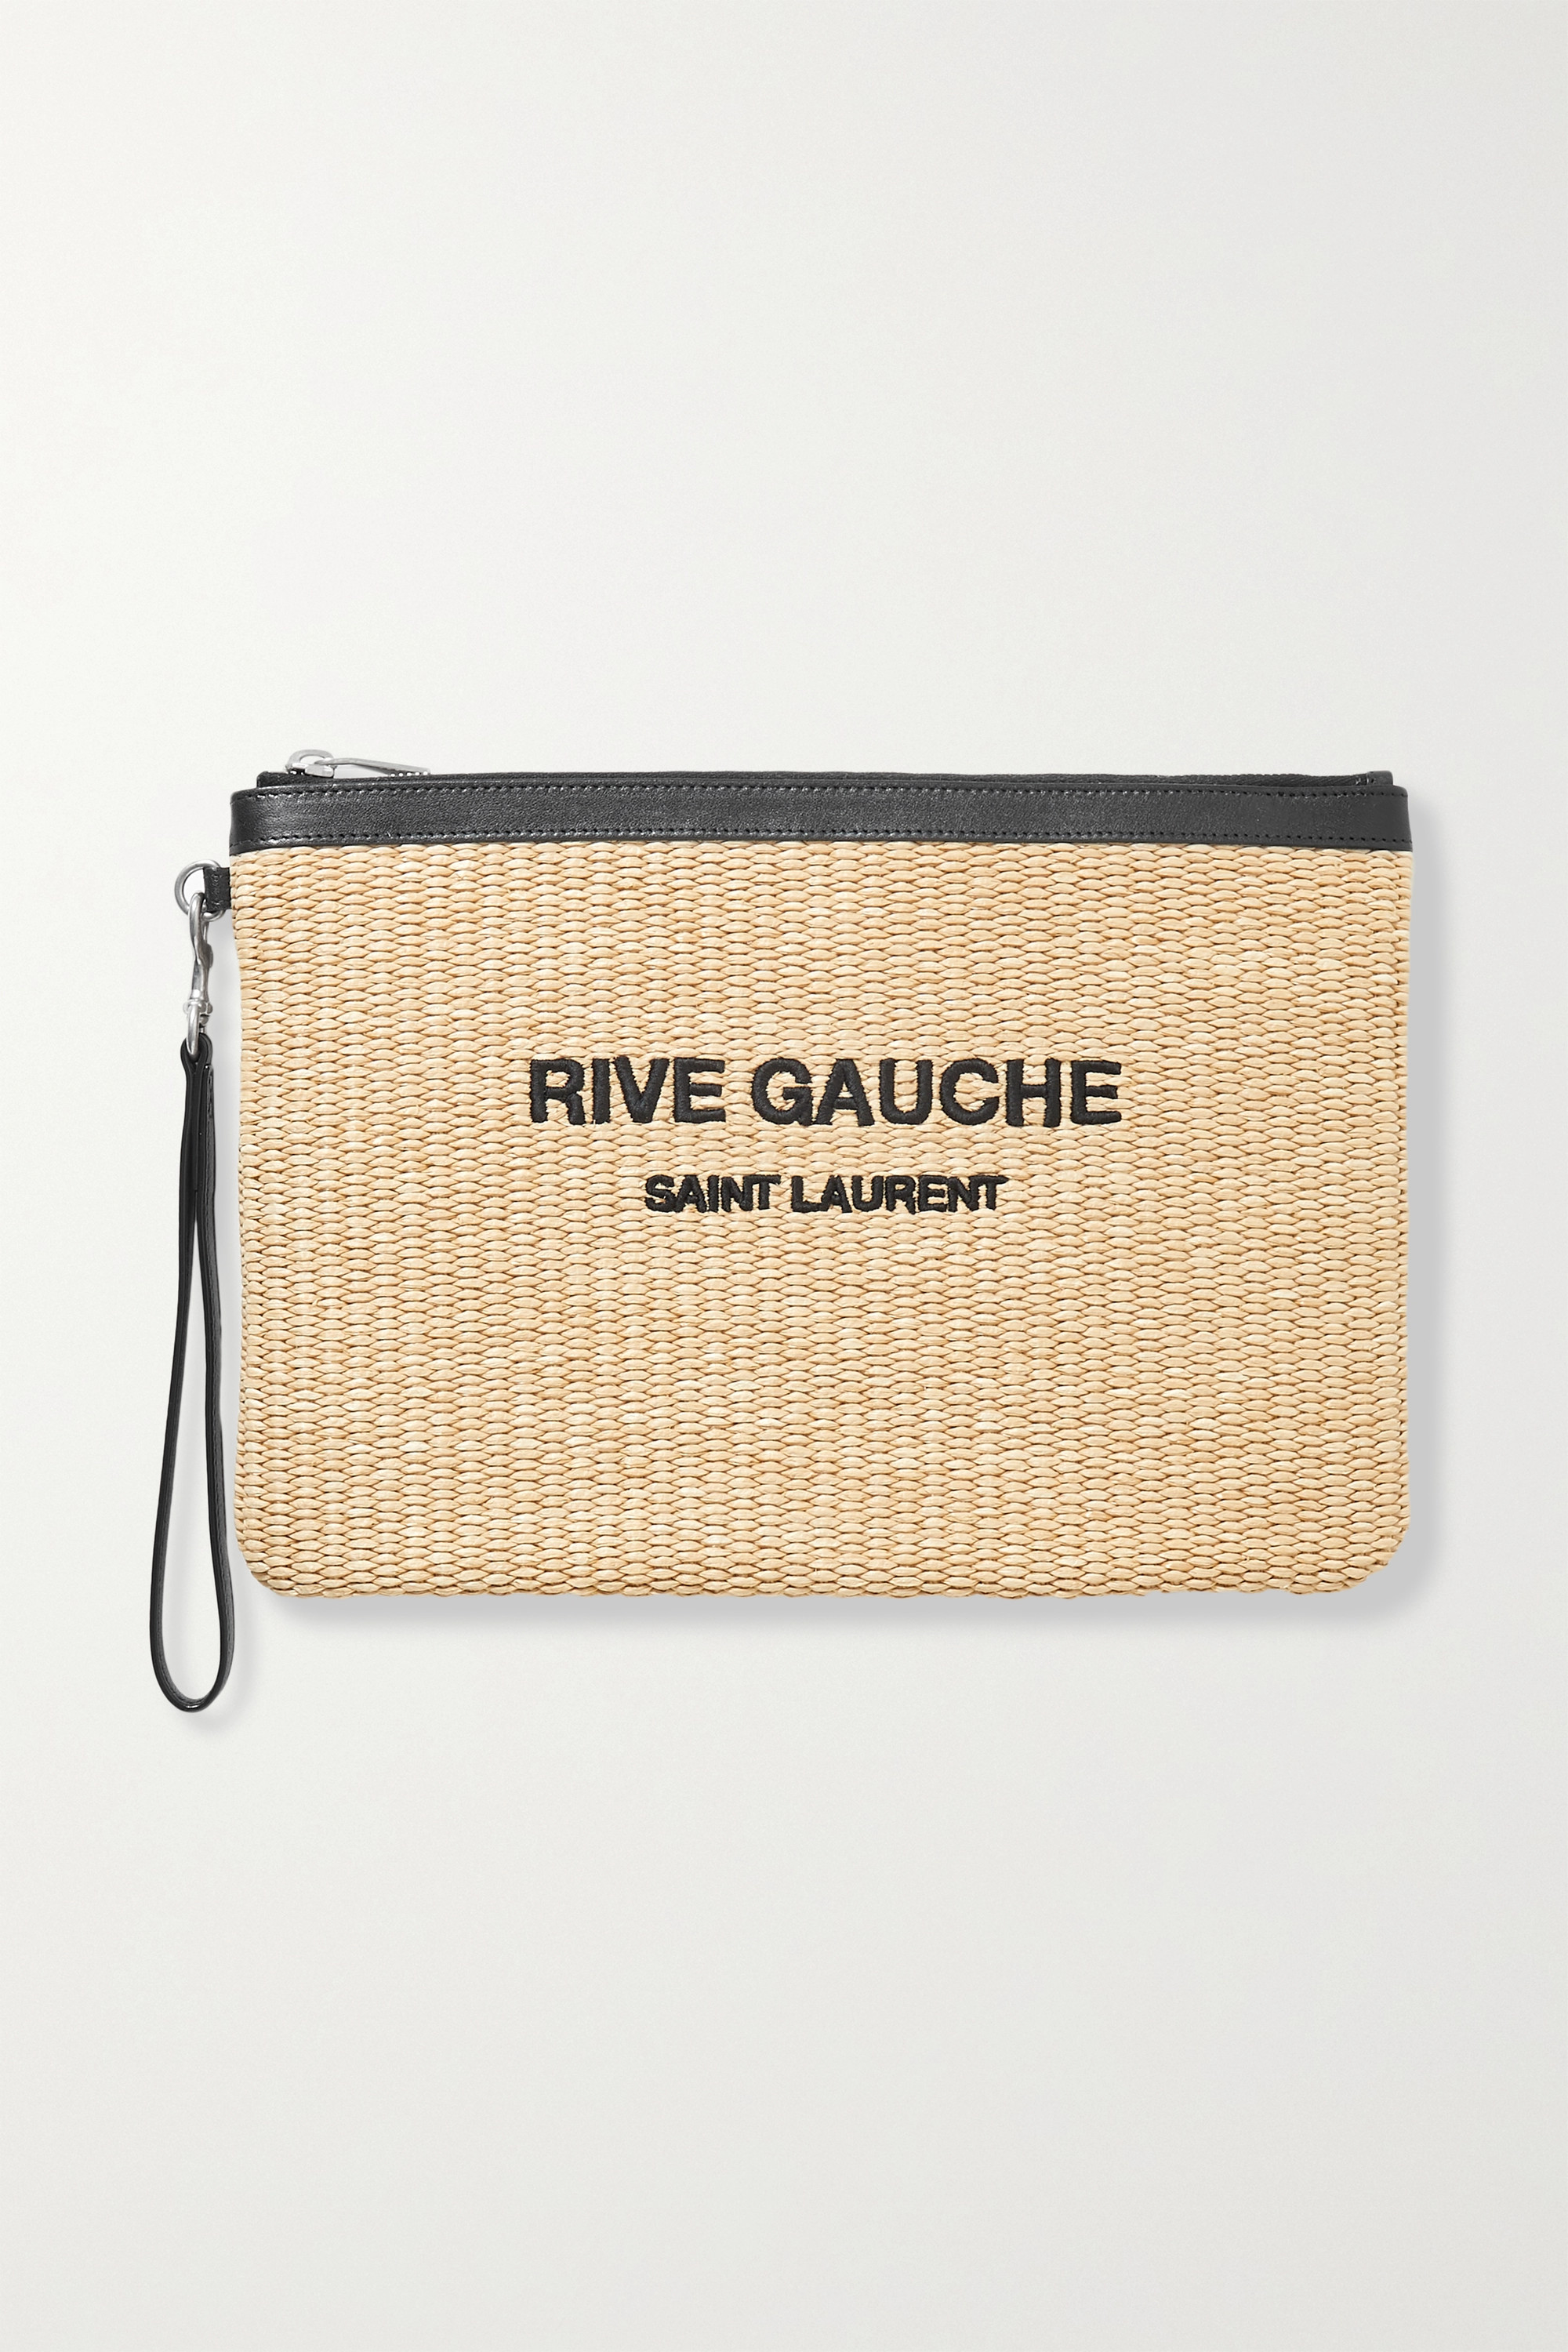 SAINT LAURENT Noe leather-trimmed embroidered raffia pouch